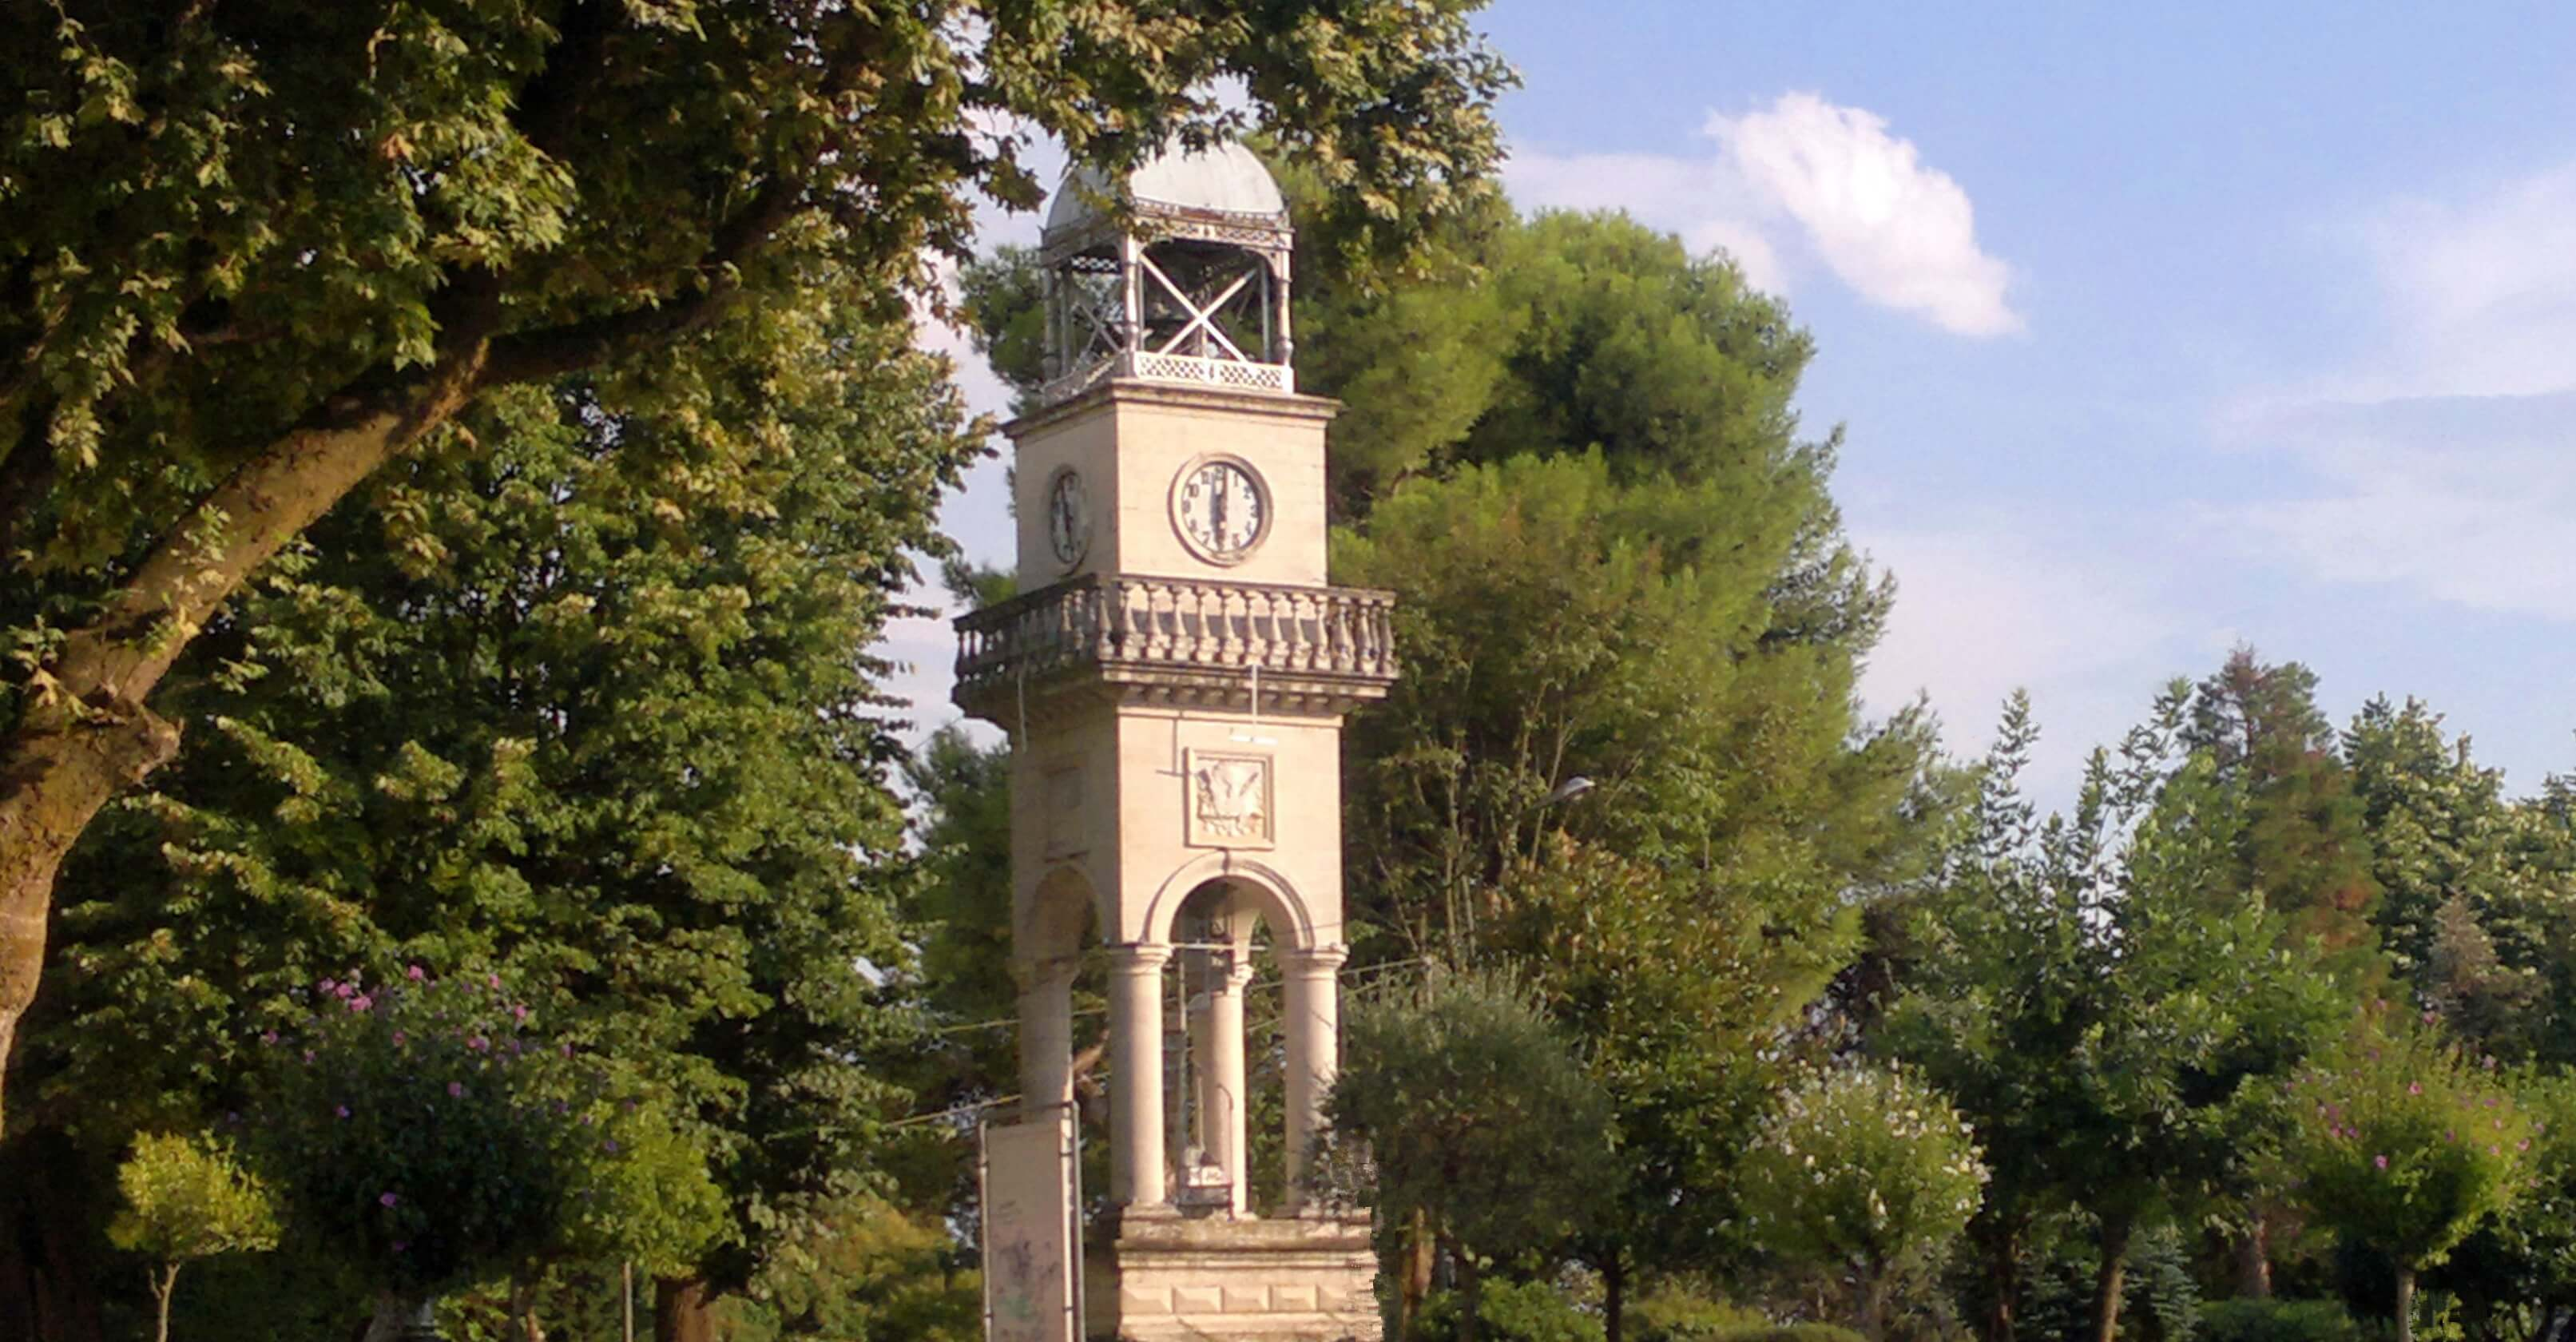 The Clock of Ioannina | Kicking Back the Pebbles